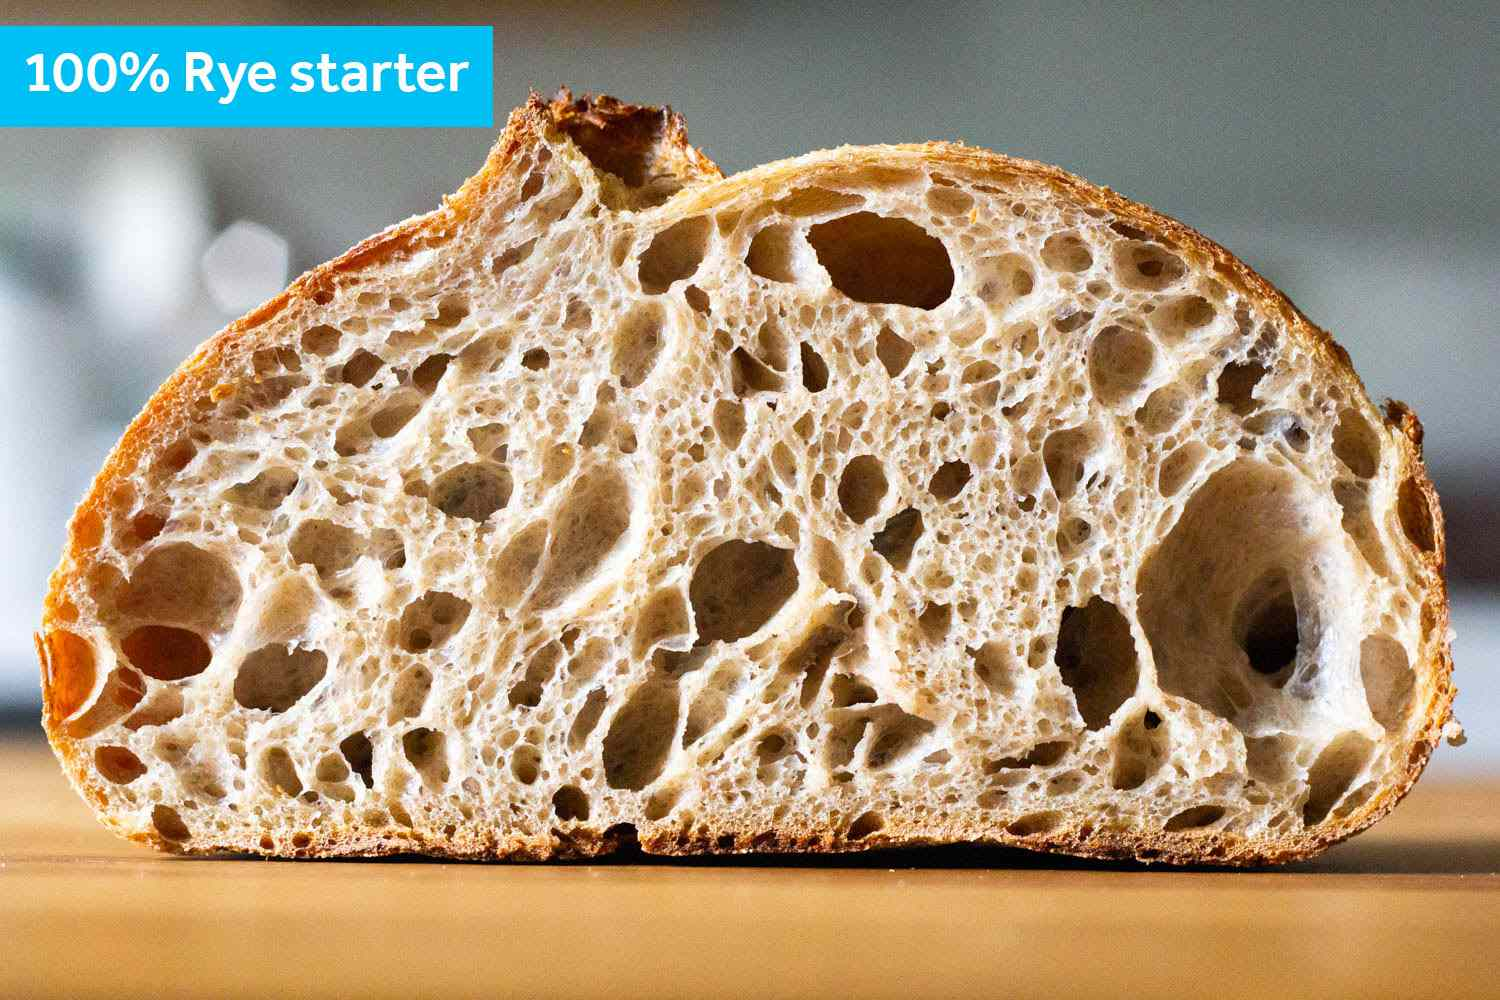 A cross section of the 100% rye starter